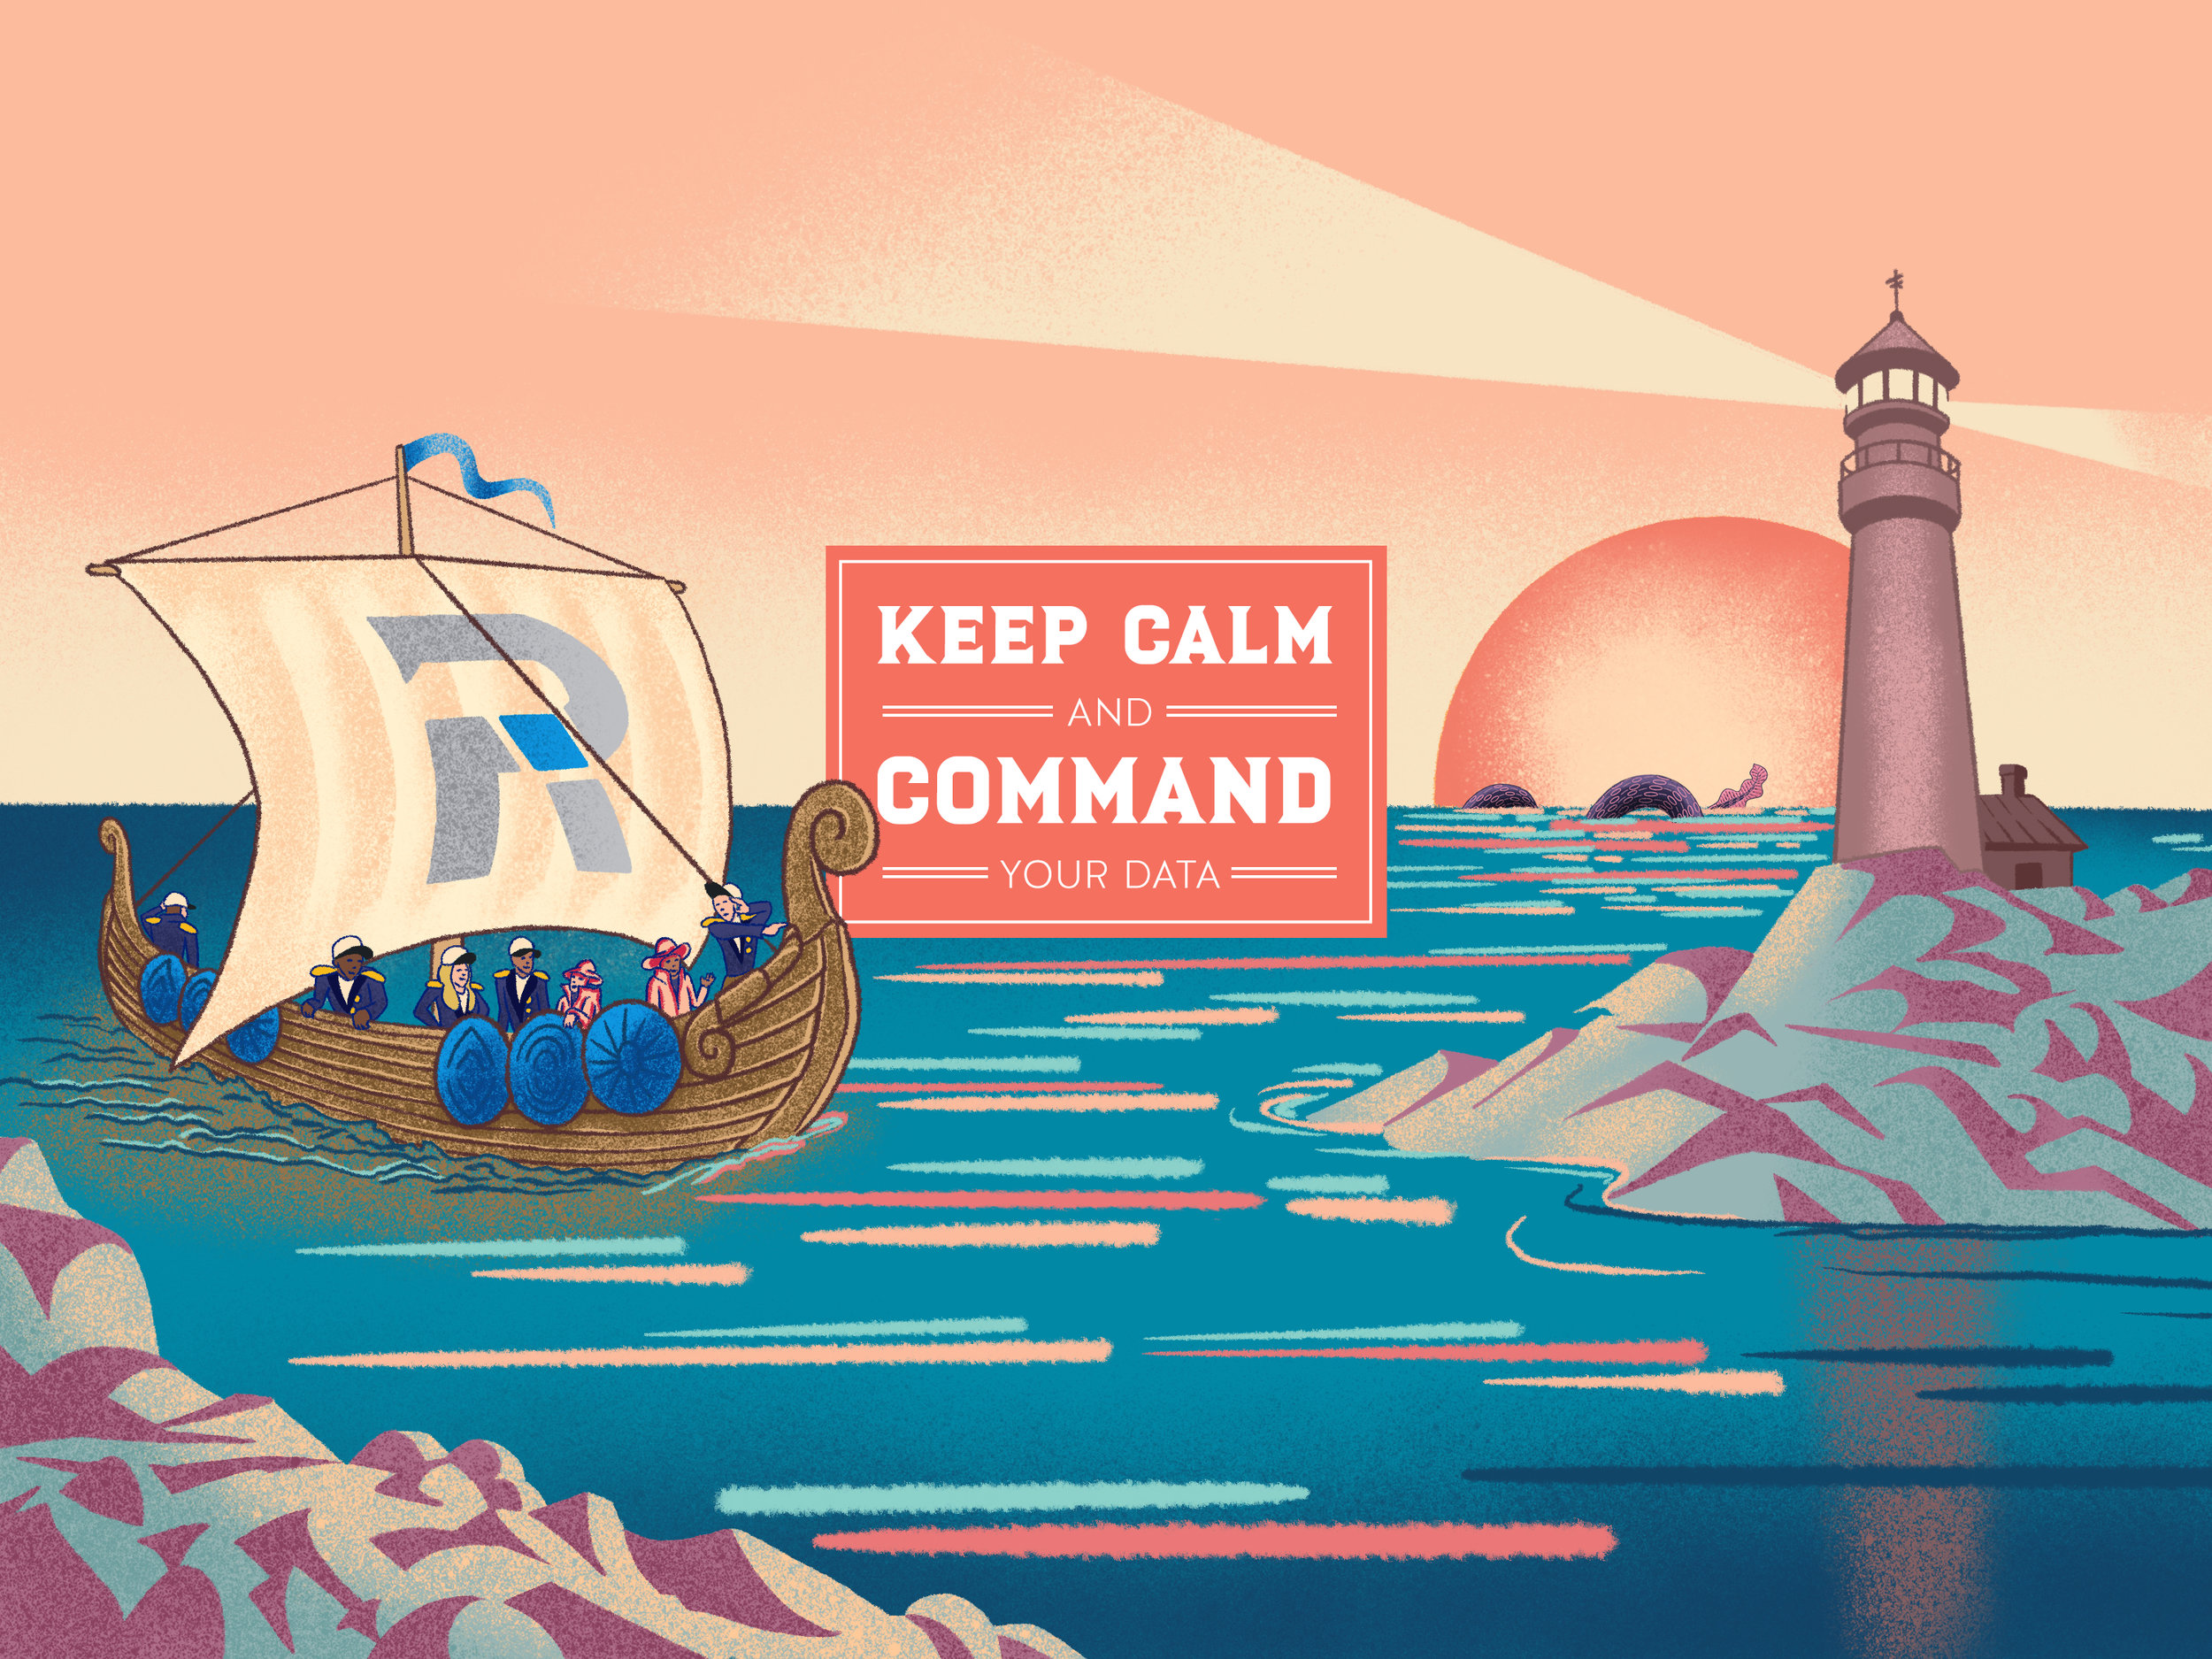 Keep calm and command your data